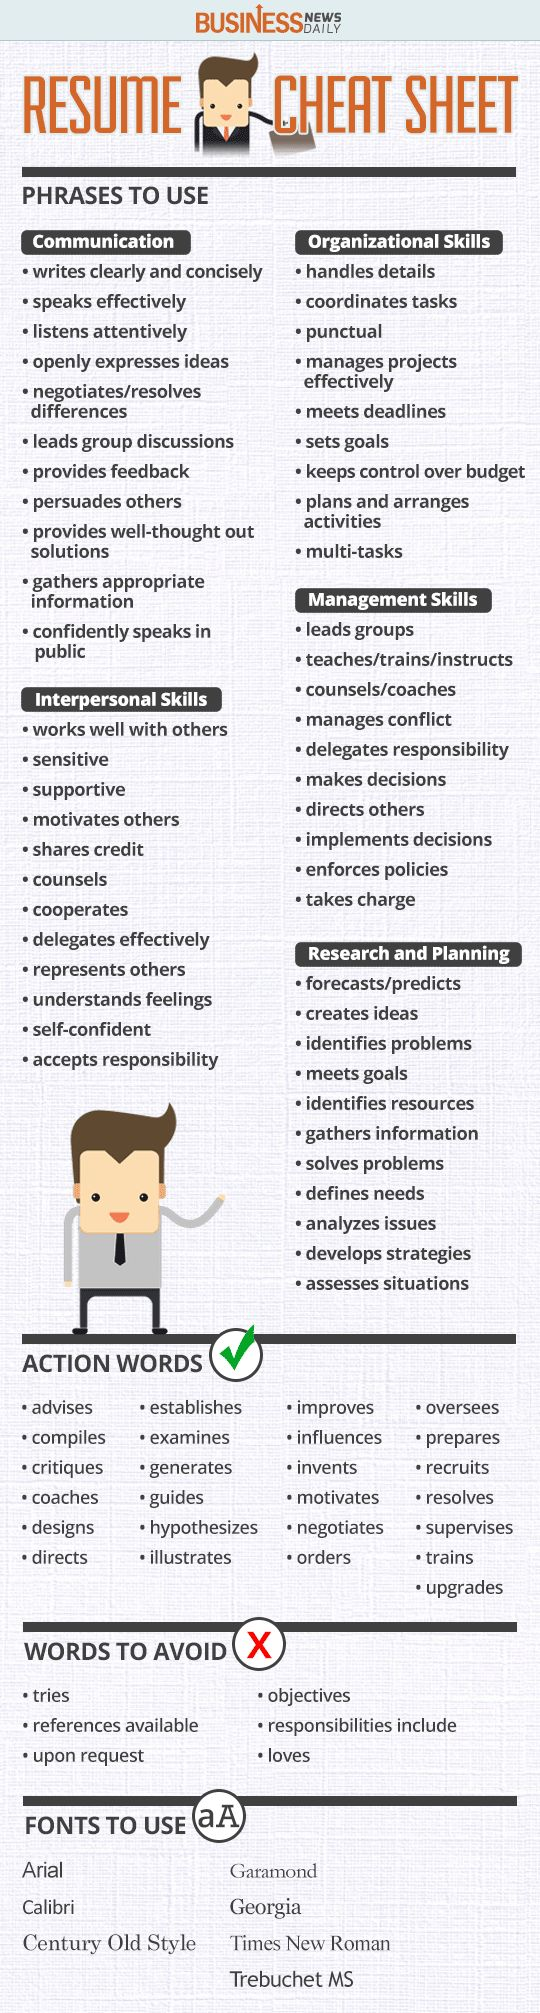 Opposenewapstandardsus  Ravishing  Ideas About Resume On Pinterest  Cv Format Resume Cv And  With Magnificent Resume Cheat Sheet Infographic Andrews Almost Done With A Complete Unit On Employment Which With Agreeable High School Education On Resume Also Example Resume Summary In Addition Free Online Resume Writer And Summa Cum Laude Resume As Well As Resume With Photo Additionally Examples Of High School Resumes From Pinterestcom With Opposenewapstandardsus  Magnificent  Ideas About Resume On Pinterest  Cv Format Resume Cv And  With Agreeable Resume Cheat Sheet Infographic Andrews Almost Done With A Complete Unit On Employment Which And Ravishing High School Education On Resume Also Example Resume Summary In Addition Free Online Resume Writer From Pinterestcom